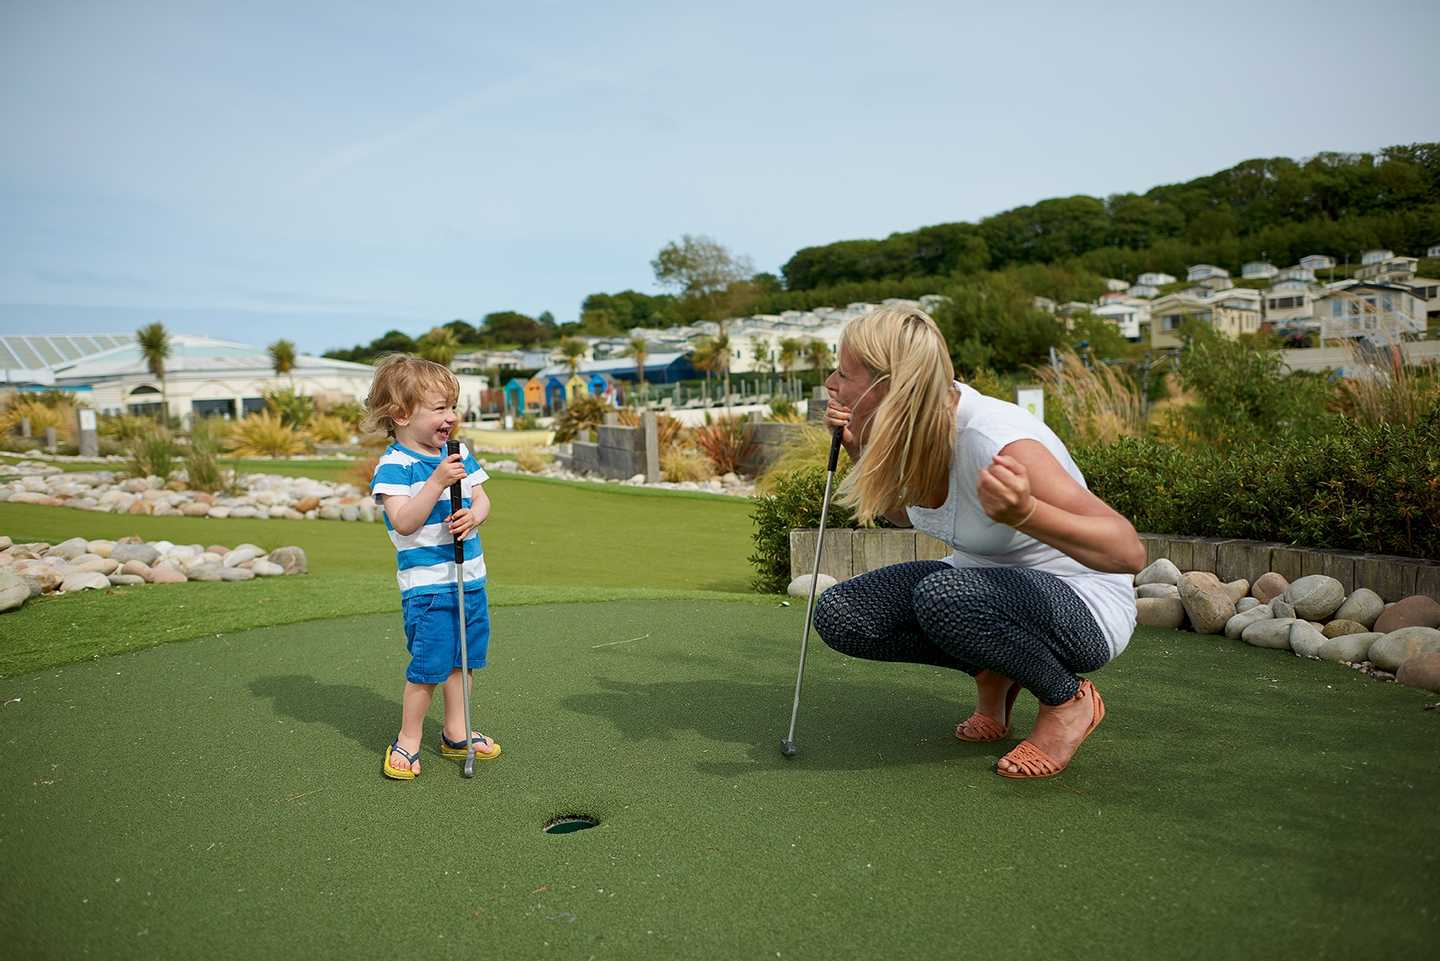 Mother and child having fun playing adventure golf at Littlesea